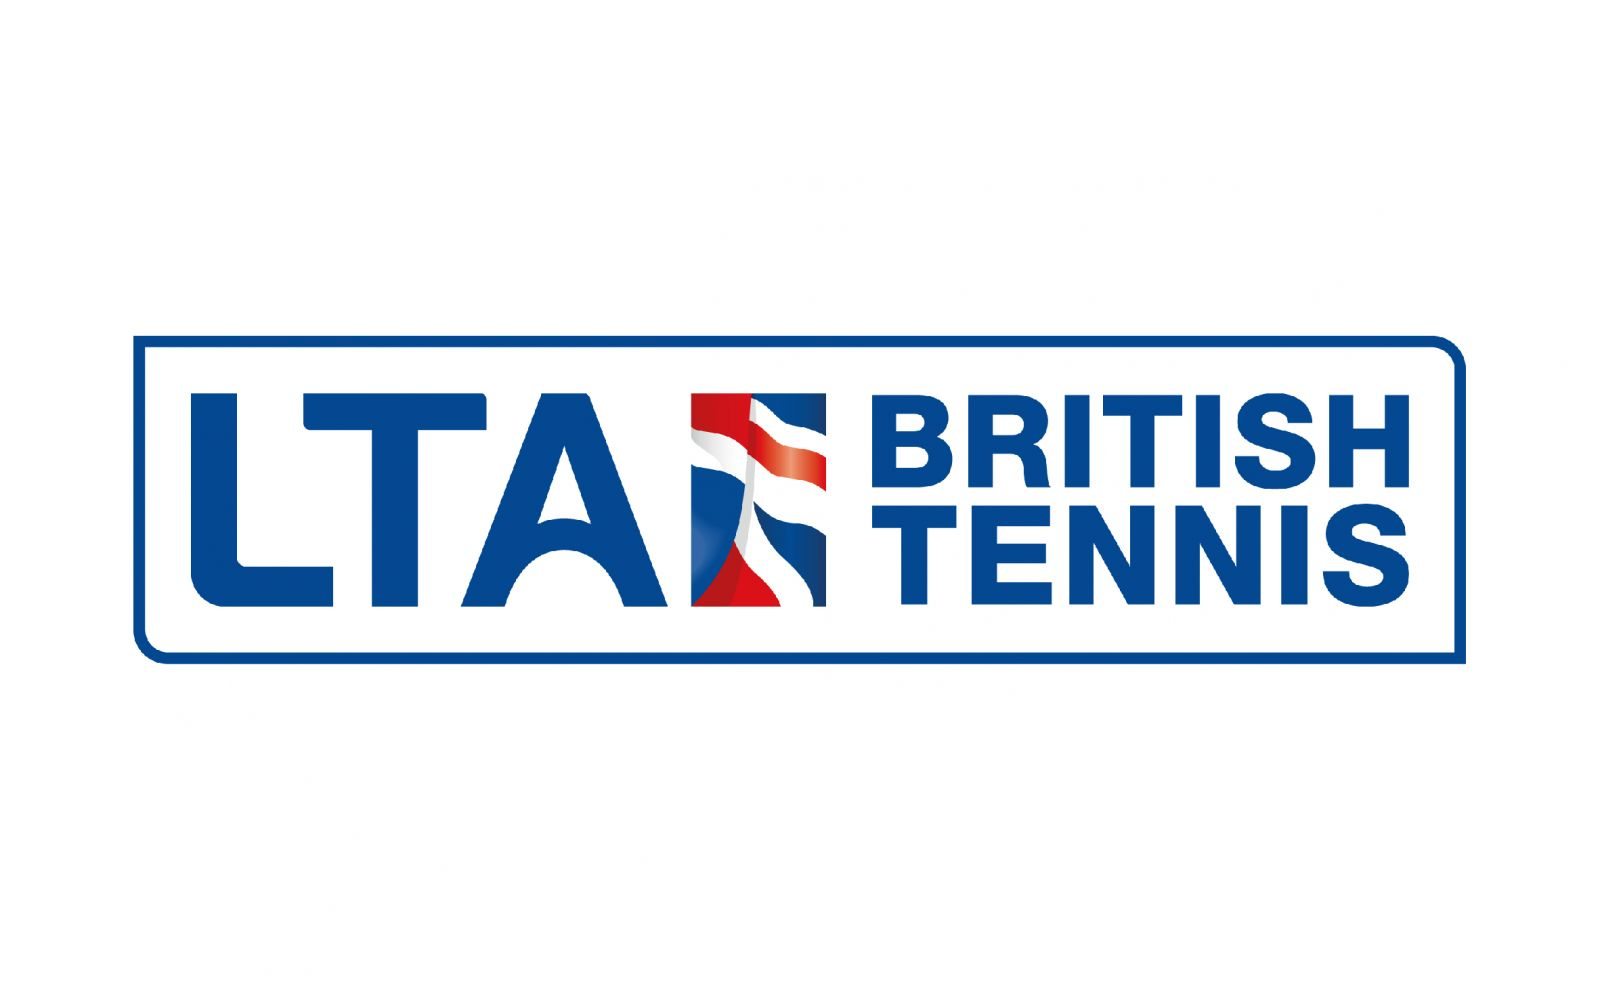 ICTS Canine teams securing the tennis at the Nature Valley Classic (Birmingham, 16-24 June) and the Fever-Tree Championships (London, 18-24 June 2018)